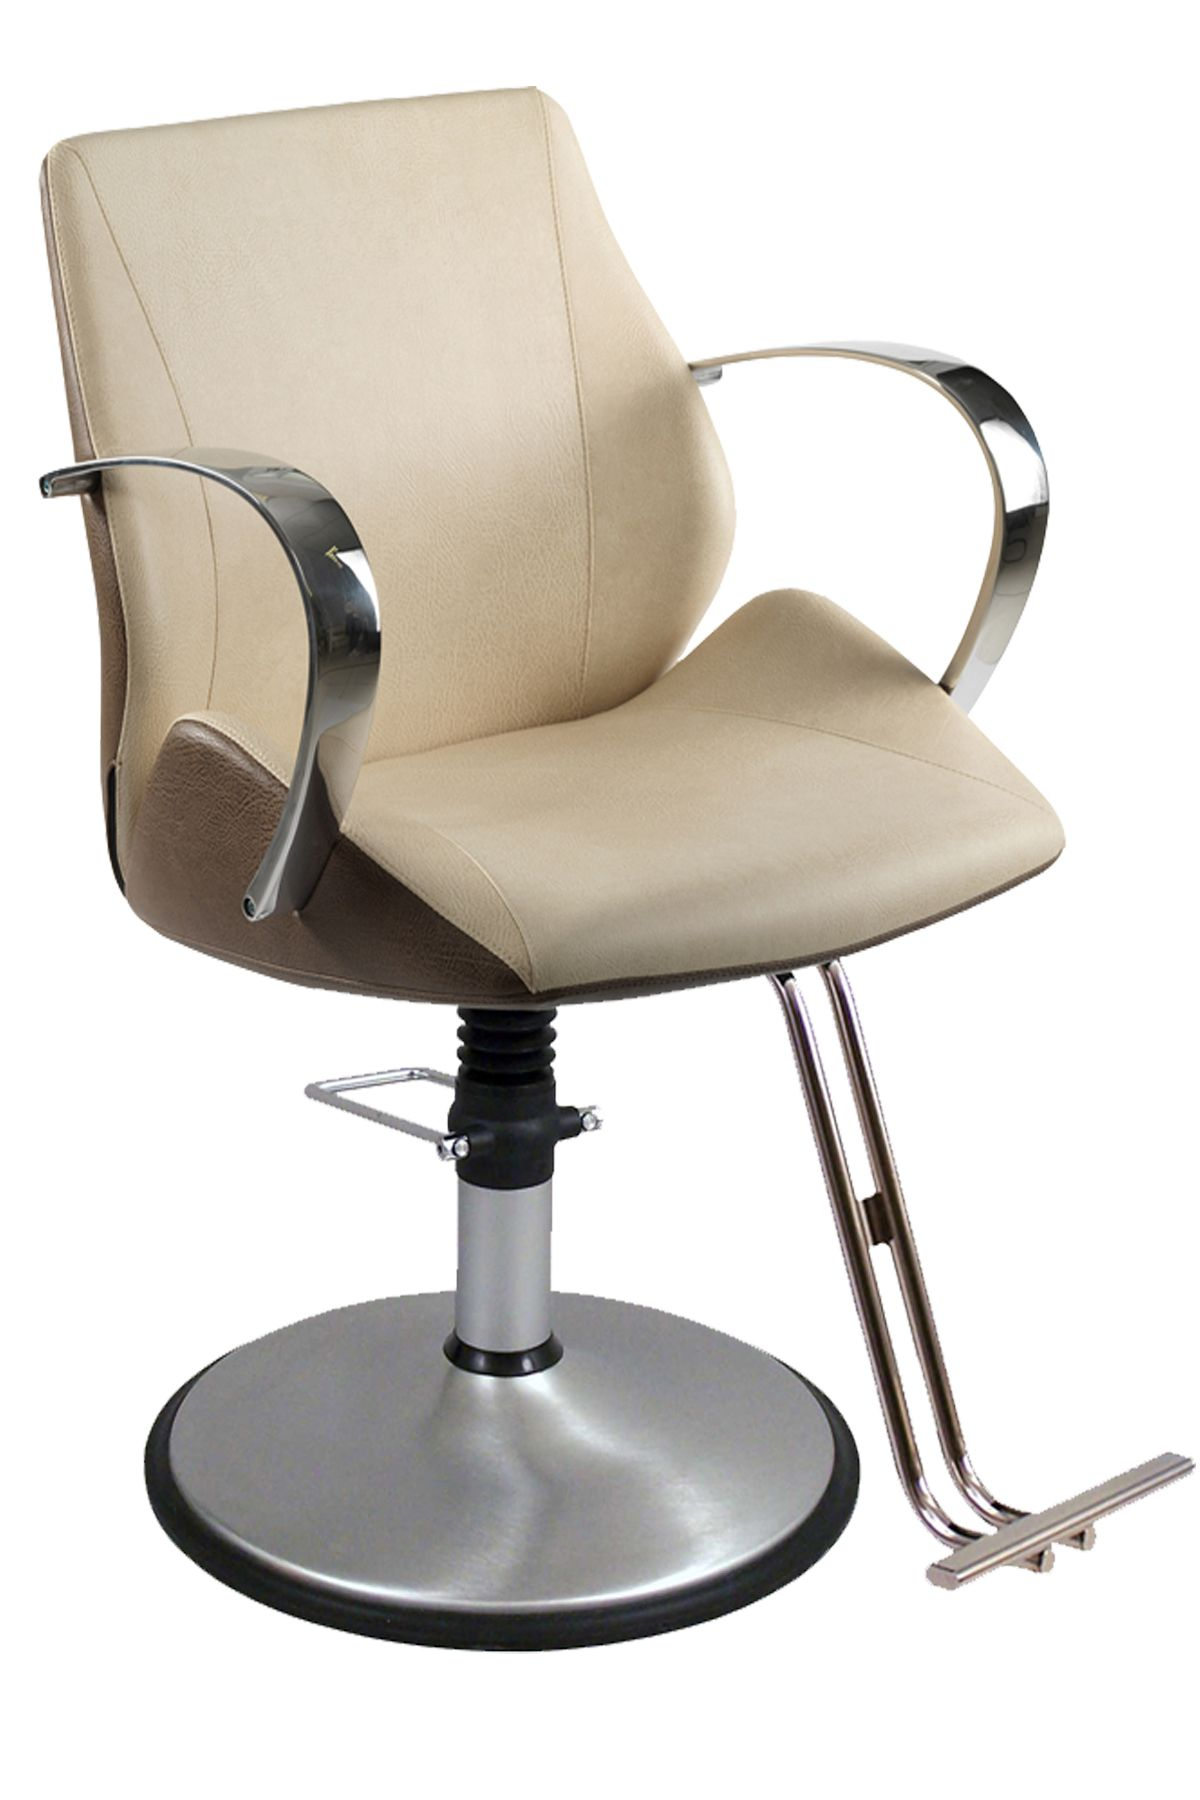 Belvedere Lk12 Look Styling Chair Chair Style Salon Styling